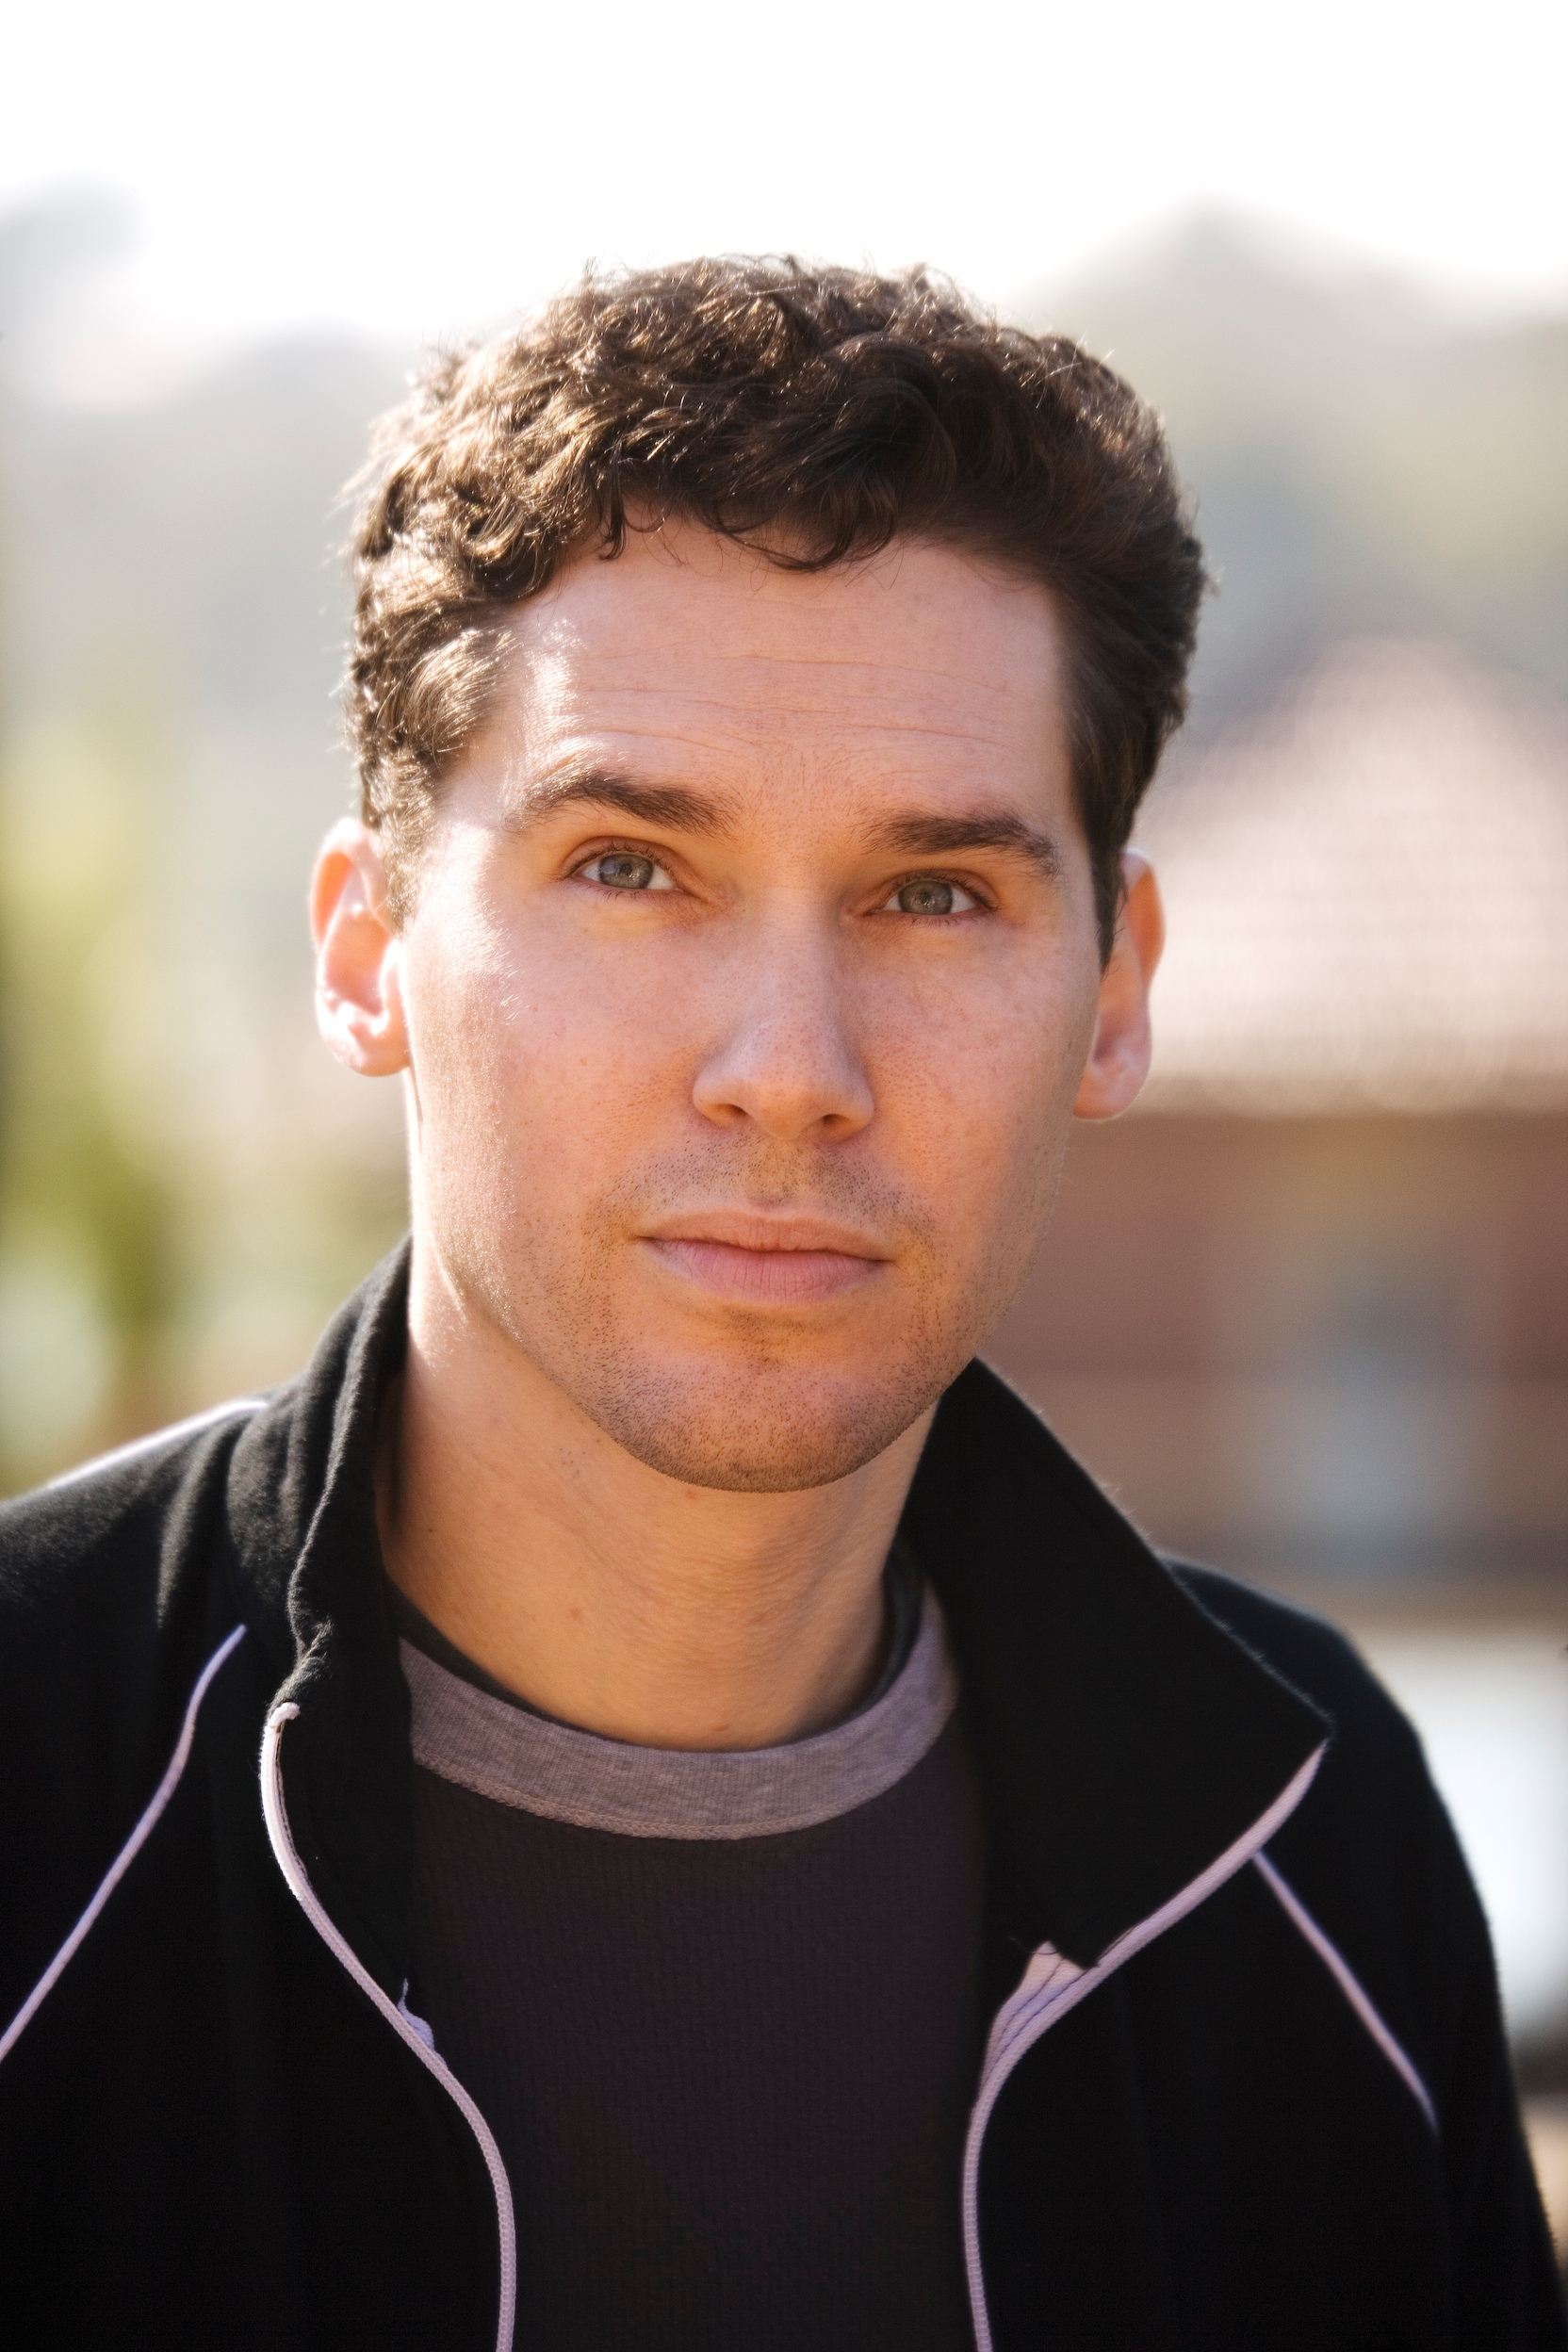 The Bryan Singer Division of Critical Studies will be the first division at the USC School of Cinematic Arts to be named for one of its alumni. (Photo/David James)